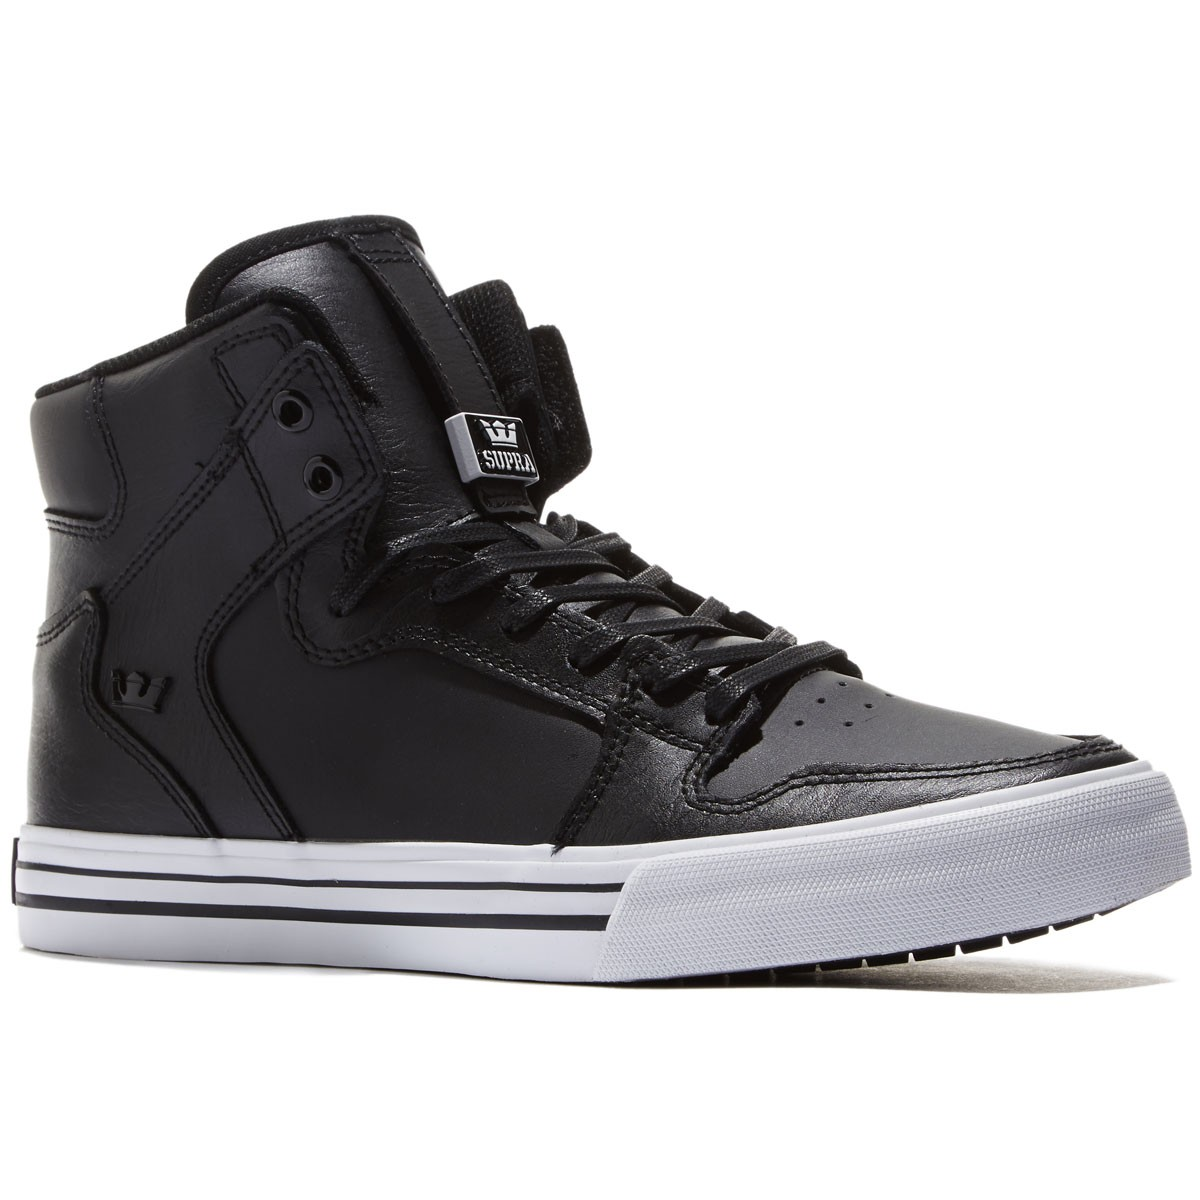 400eb4e55ad0 Supra Vaider Shoes - Black White - 8.0